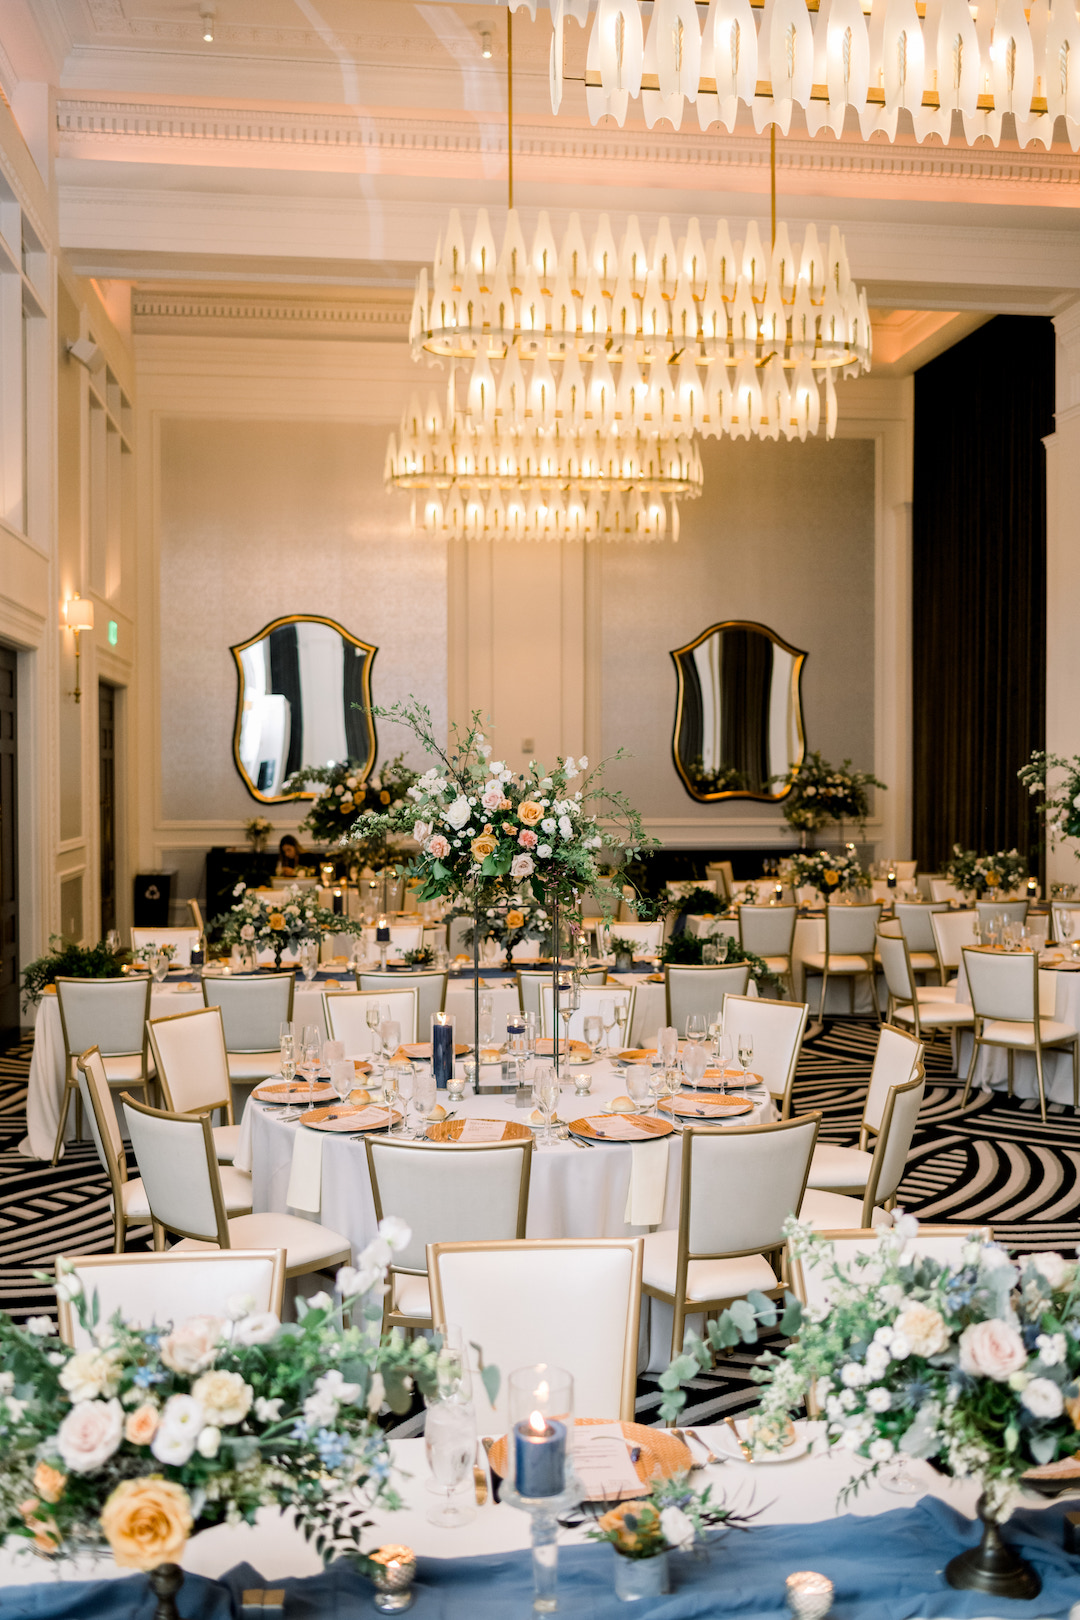 Wedding reception design for Pittsburgh wedding at Hotel Monaco planned by Exhale Events. Find more modern wedding ideas at exhale-events.com!